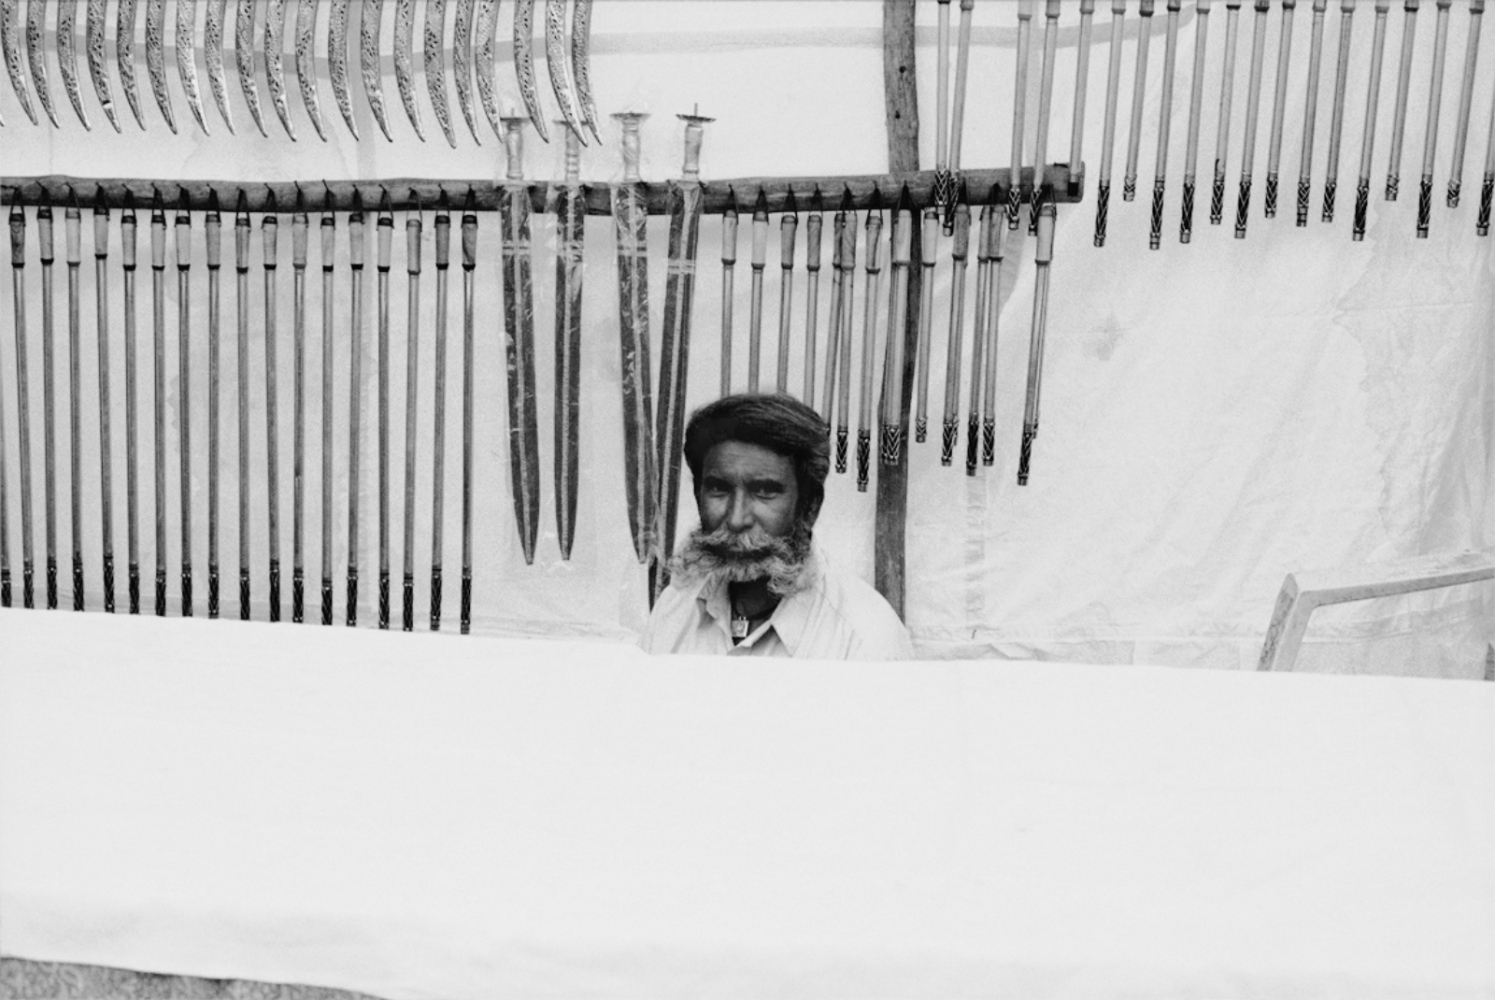 Man and Knives, Pushkar, India, November 2003